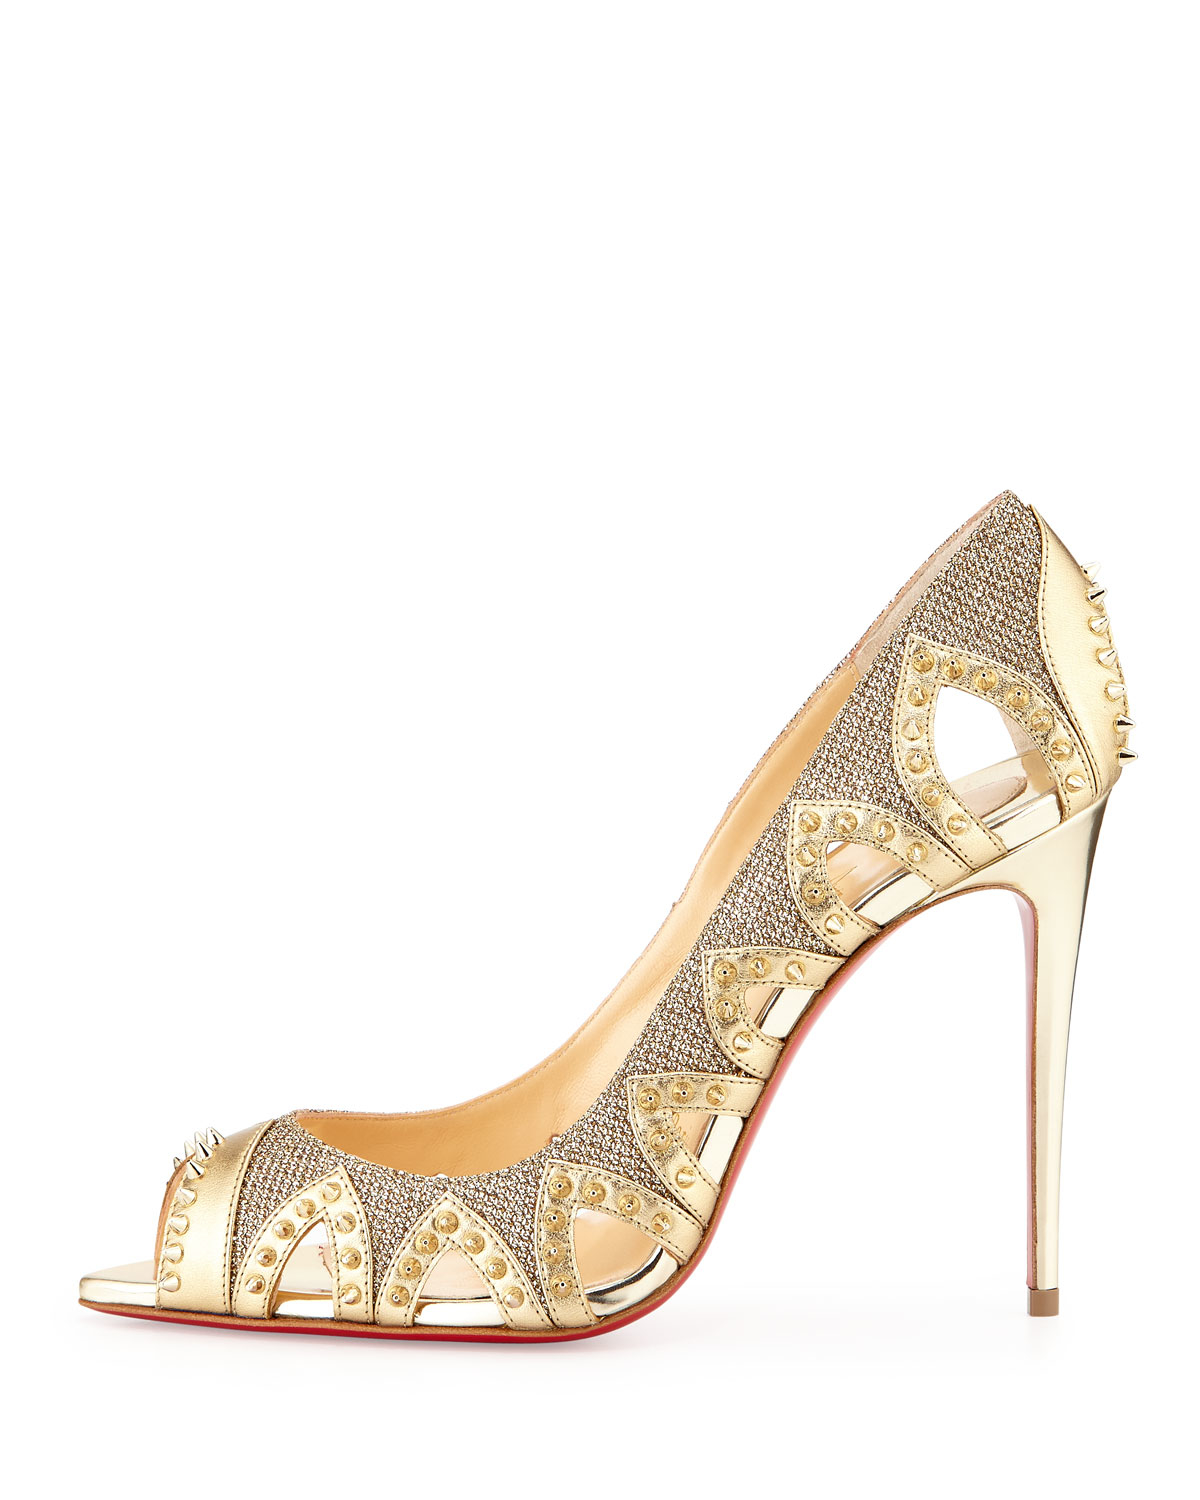 louboutin.com shoes - christian louboutin circus cut-out ankle boots, christian ...